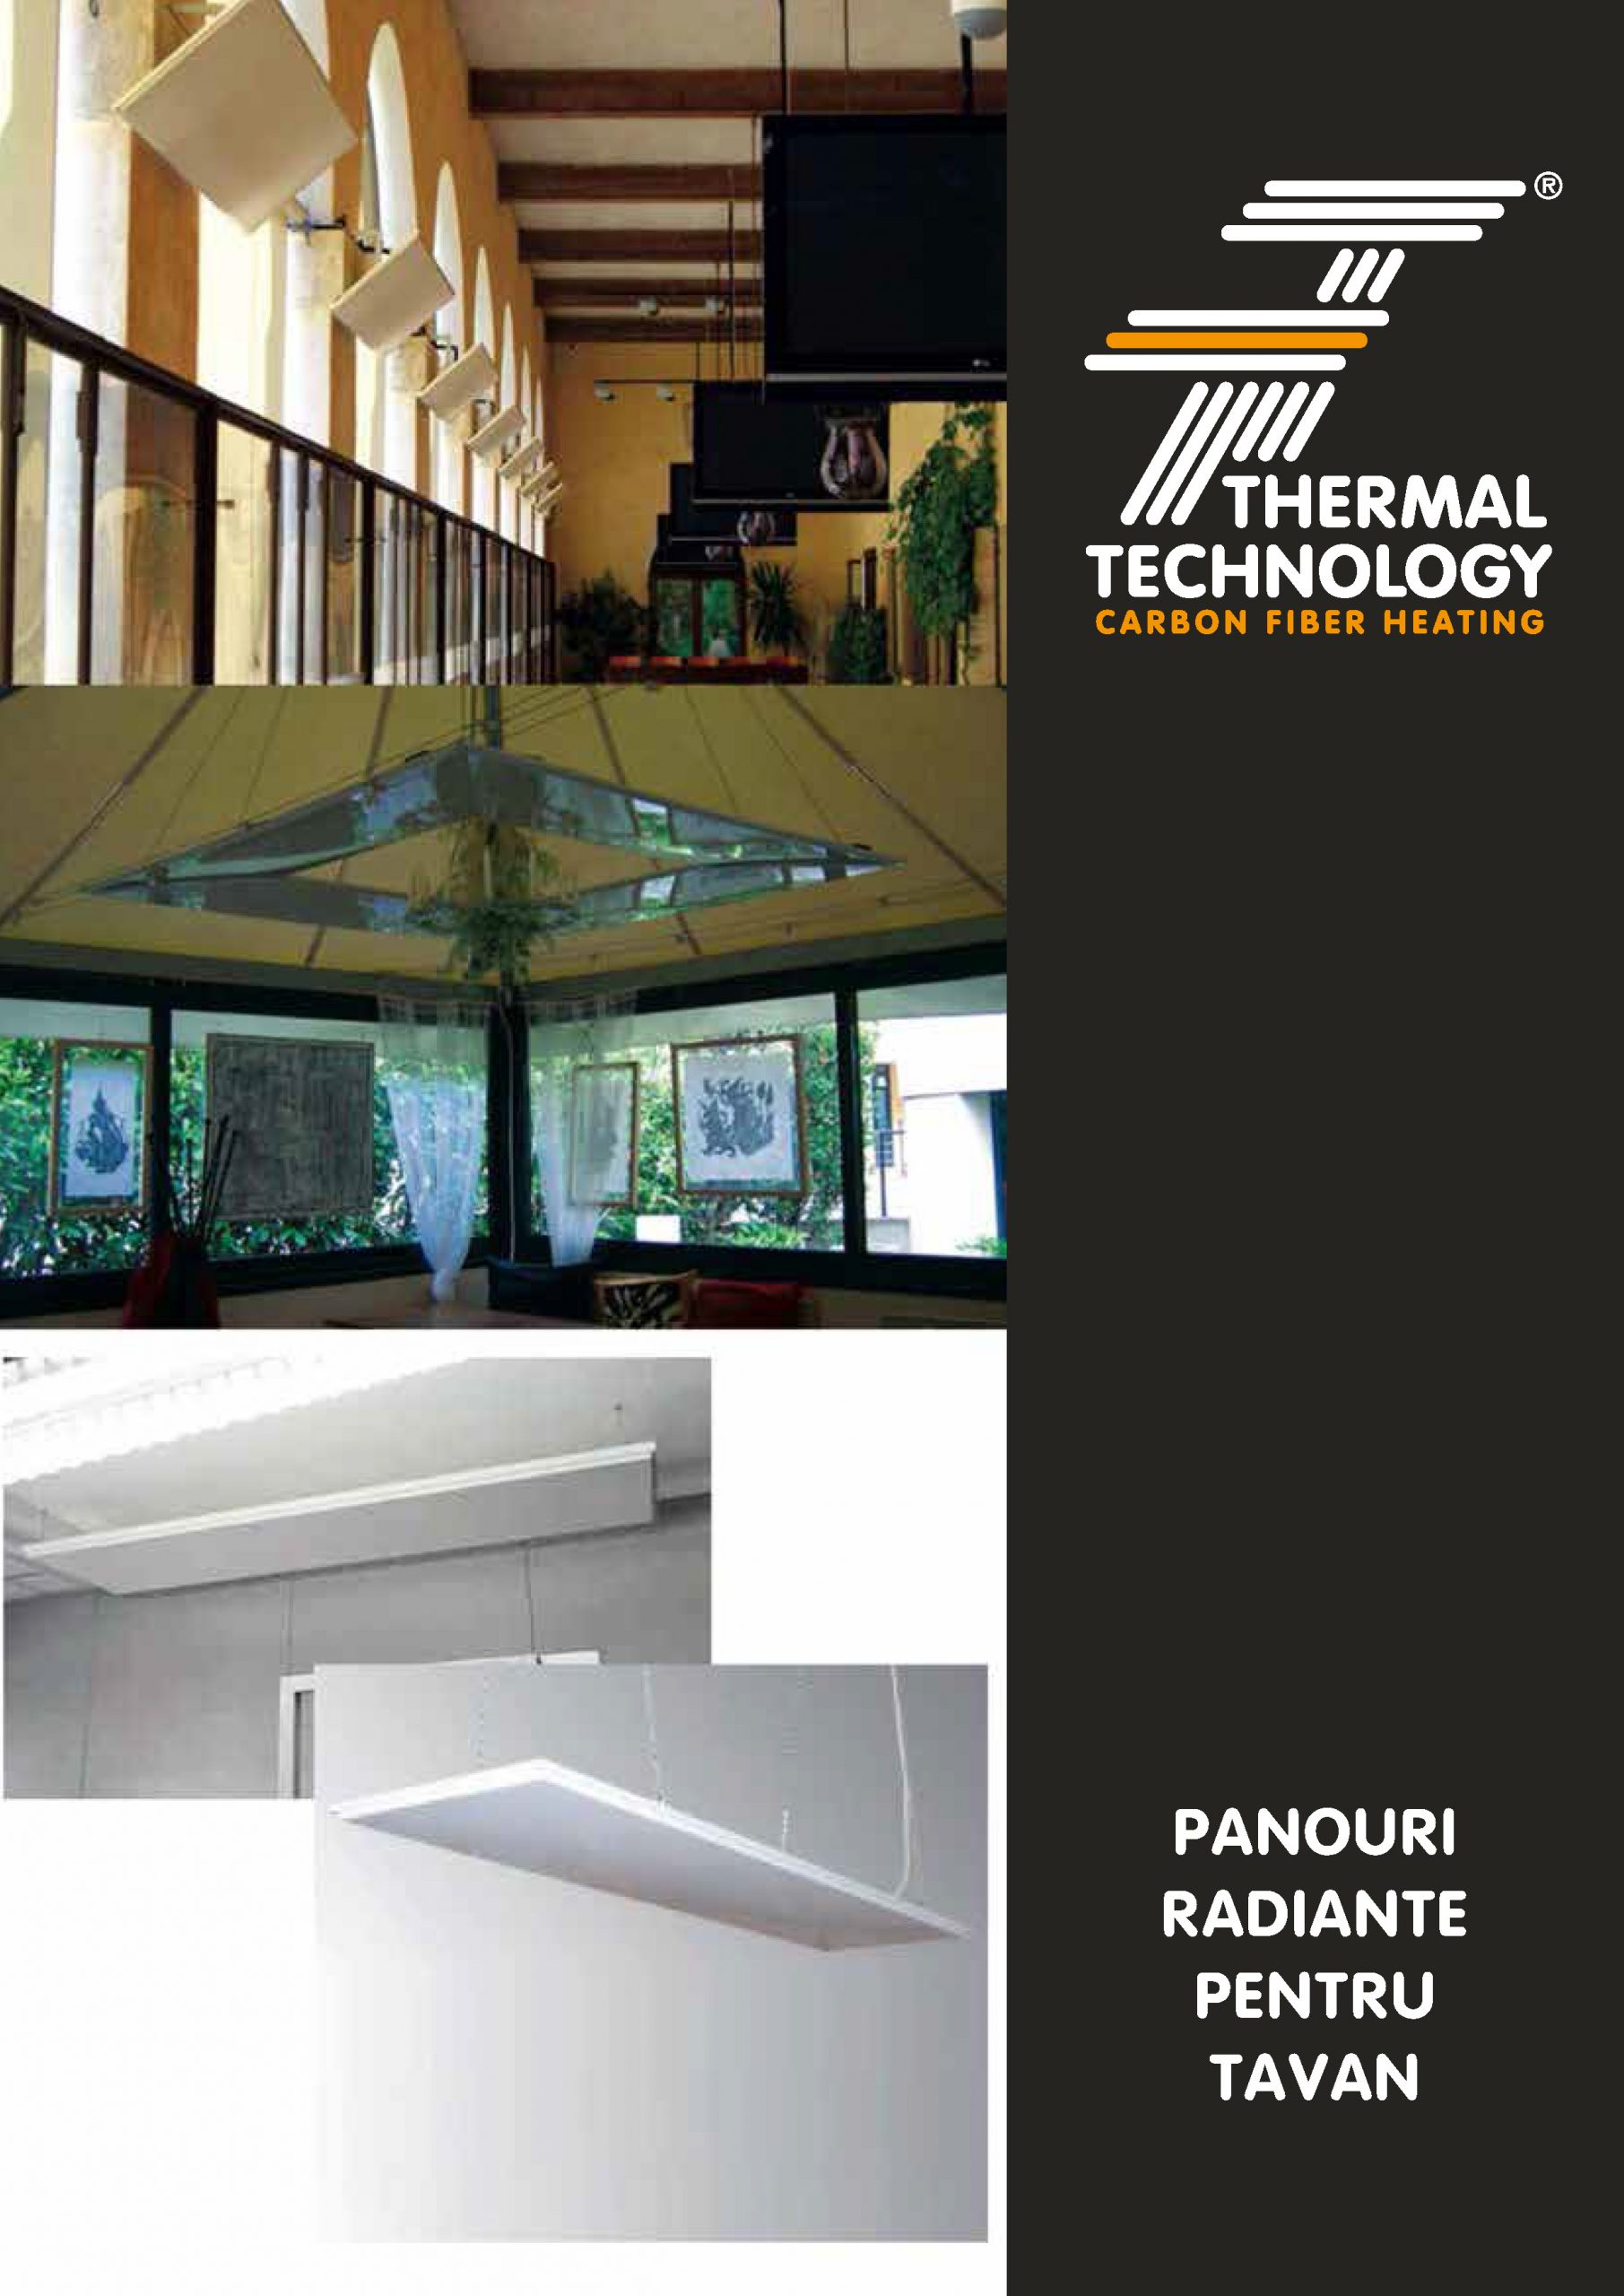 https://thermaltechnology.ro/wp-content/uploads/2020/03/PRS2_RO_Panouri-radiante-pentru-TAVAN.1_Page_1-scaled.jpg